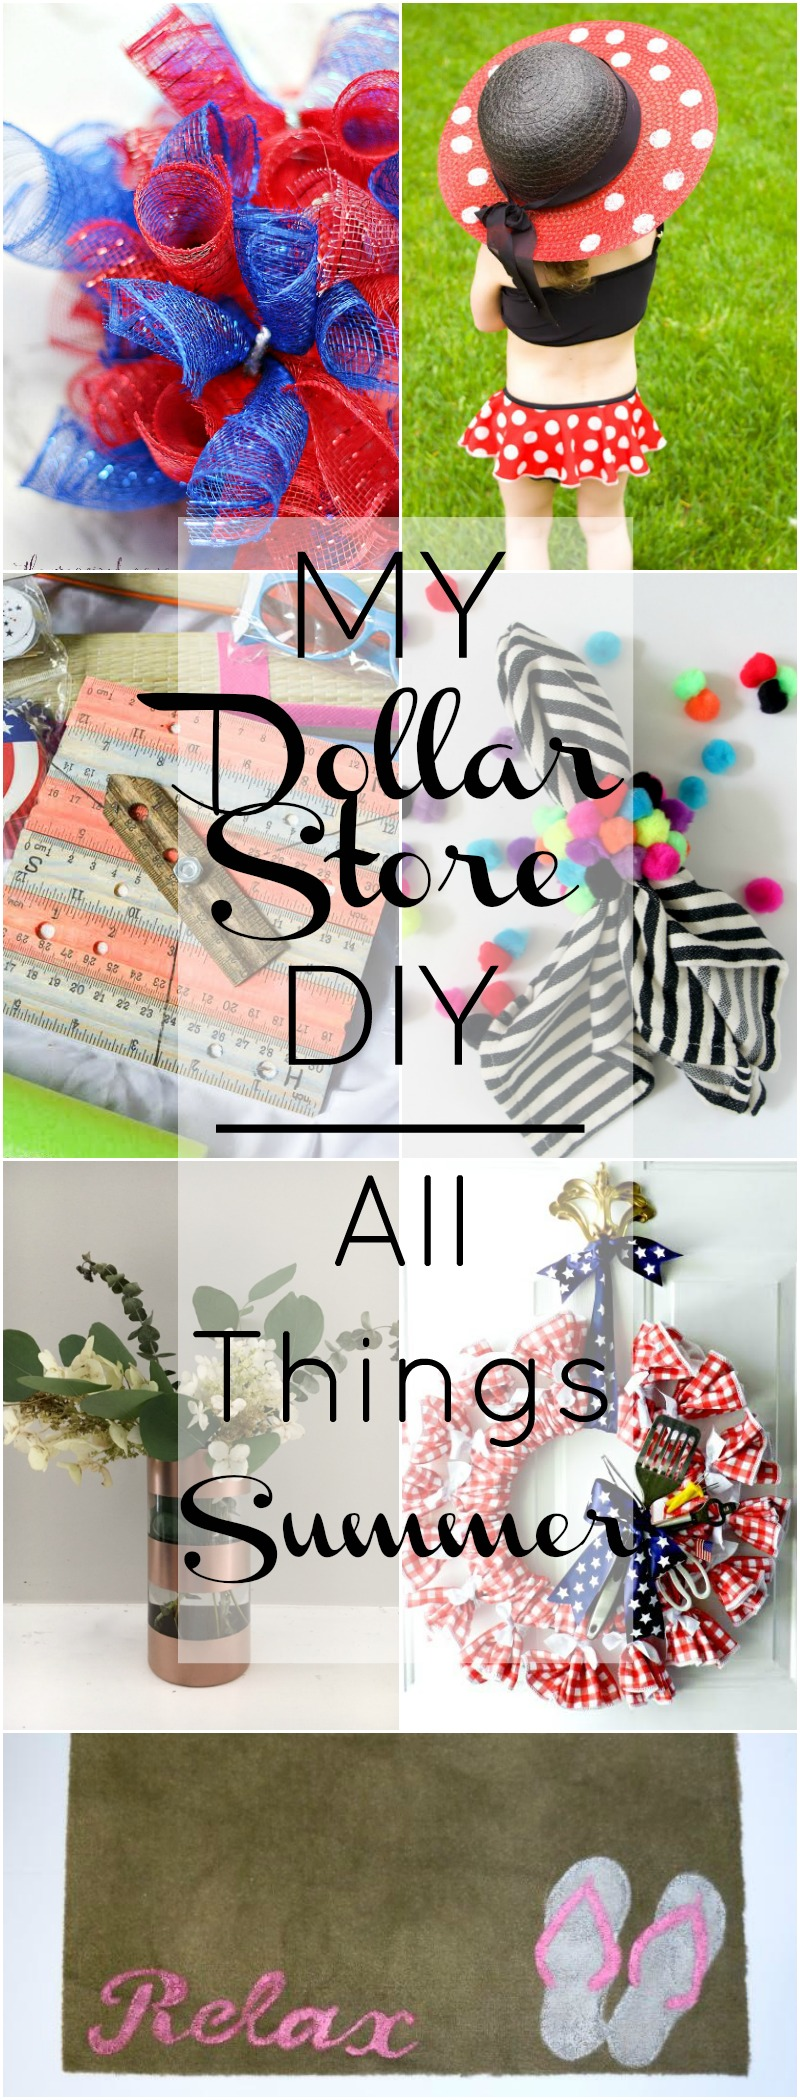 My Dollar Store DIY | All Things Summer!